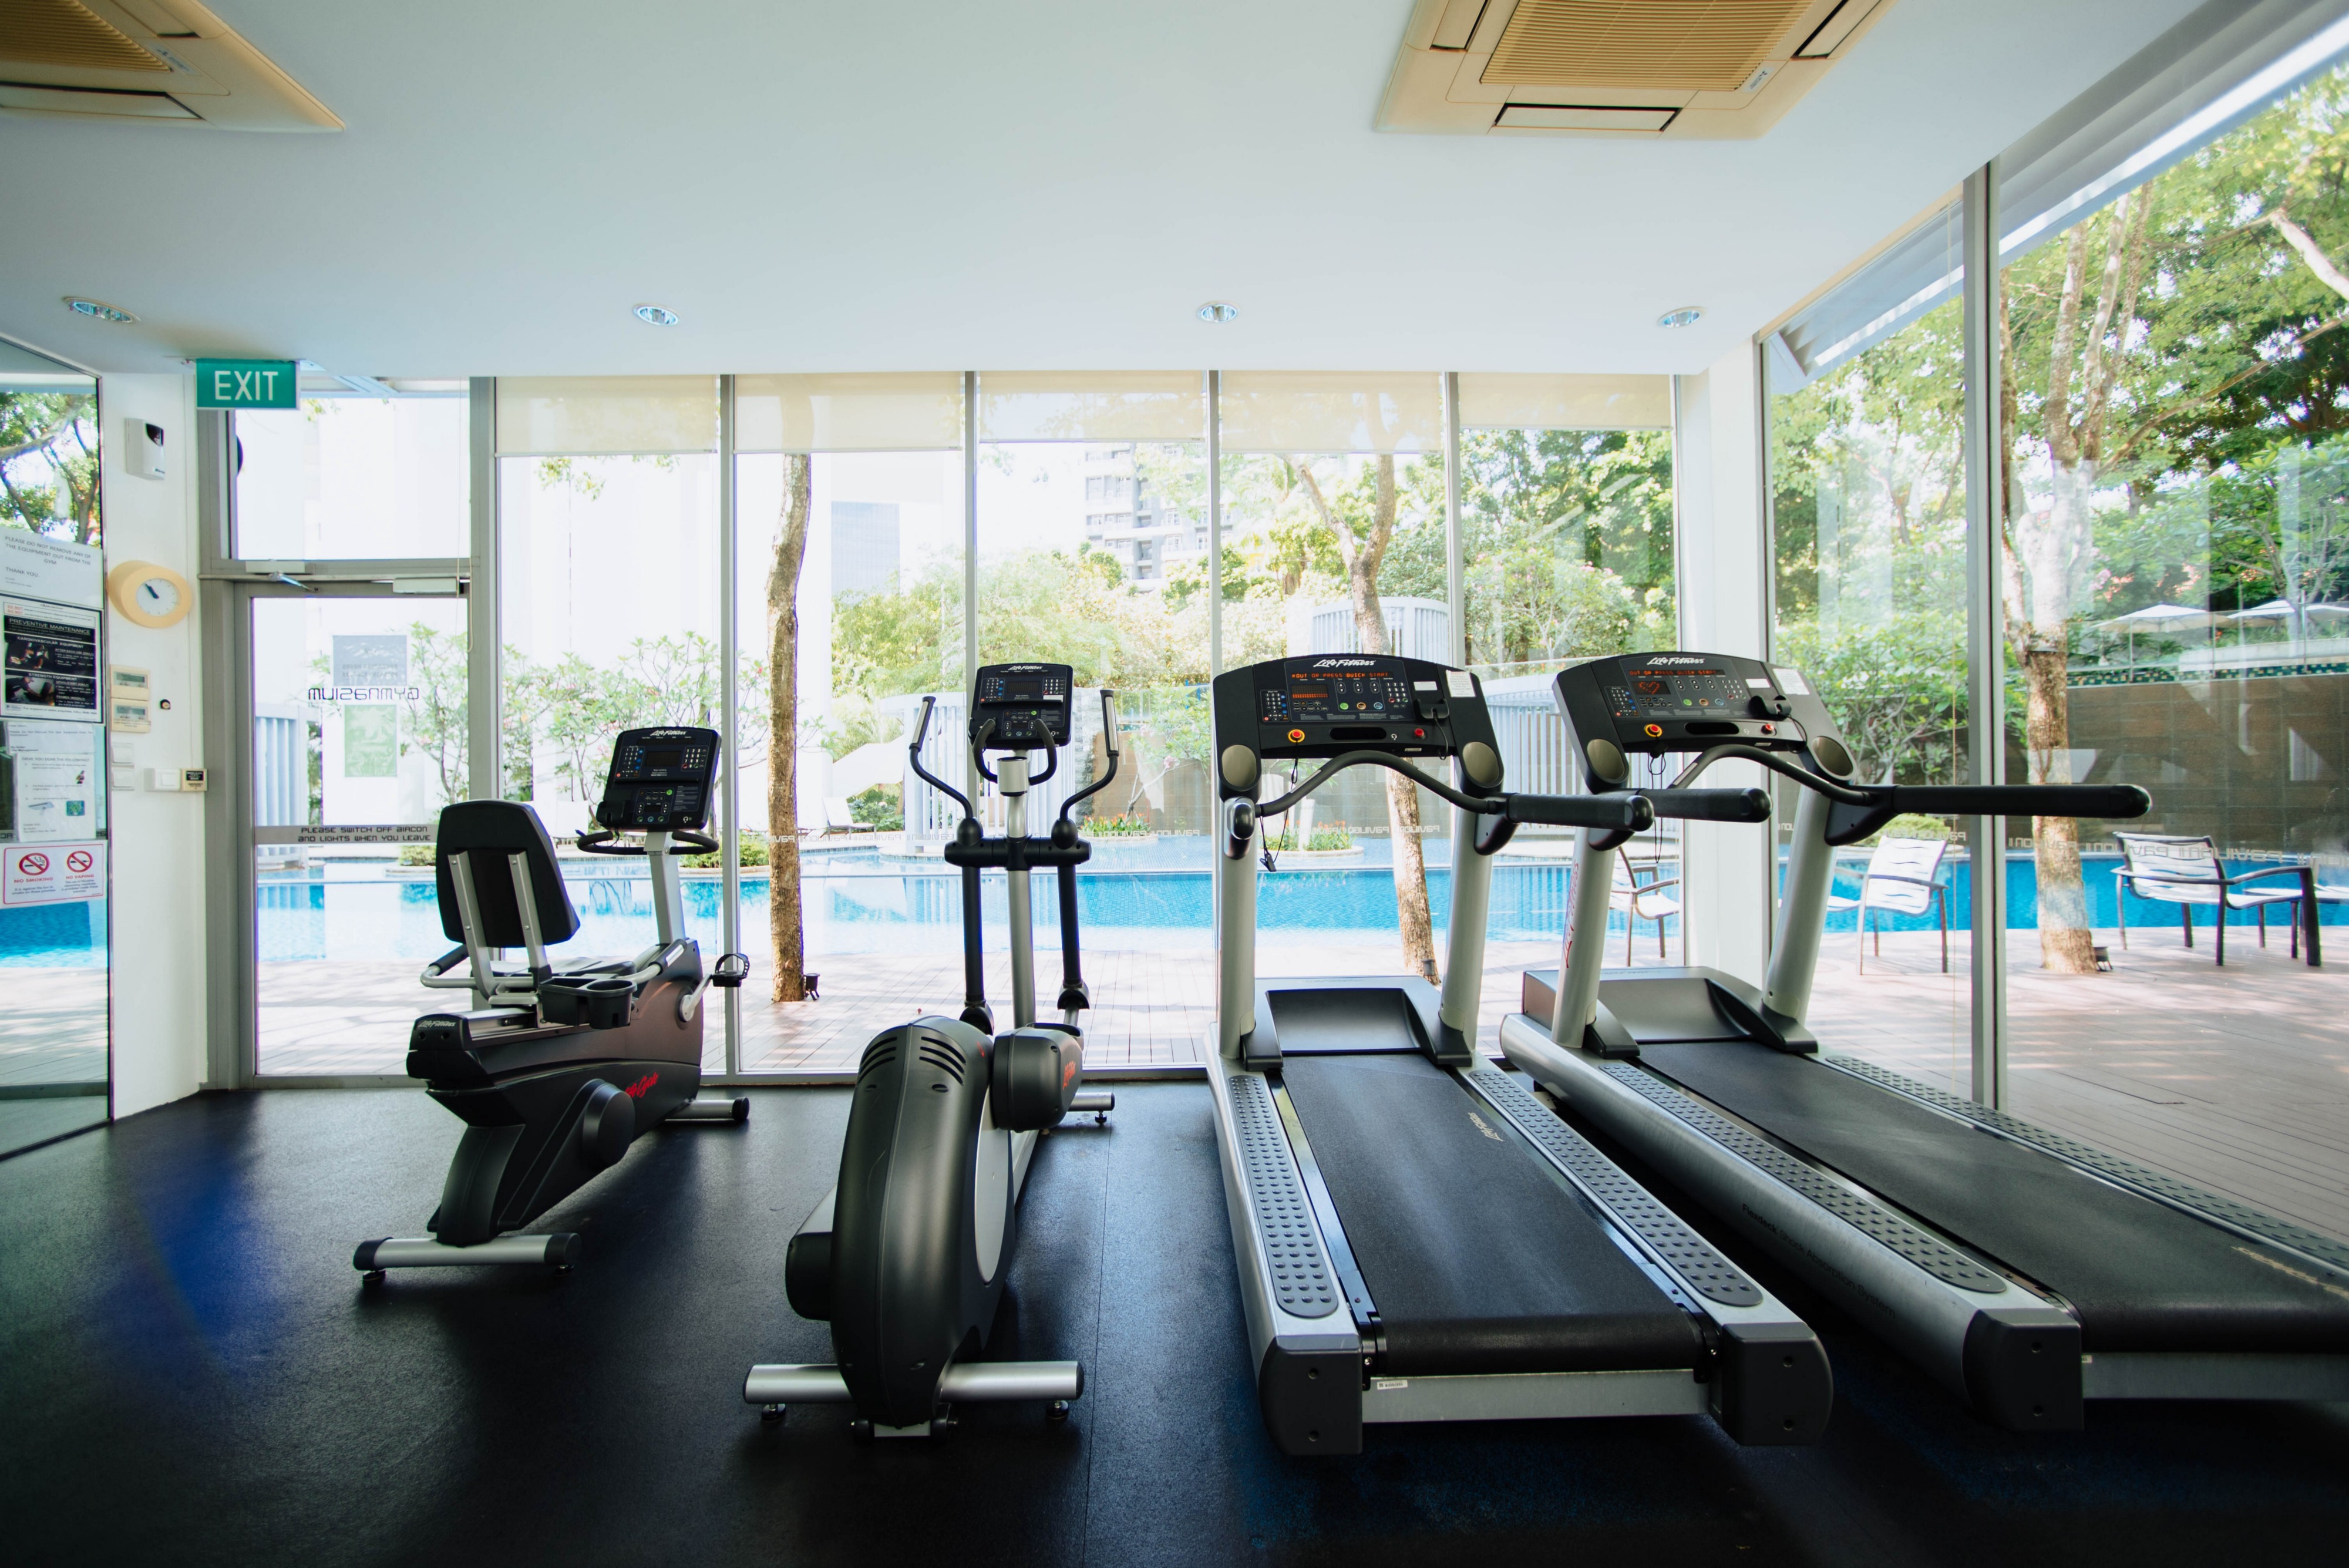 Treadmill and workout equipment